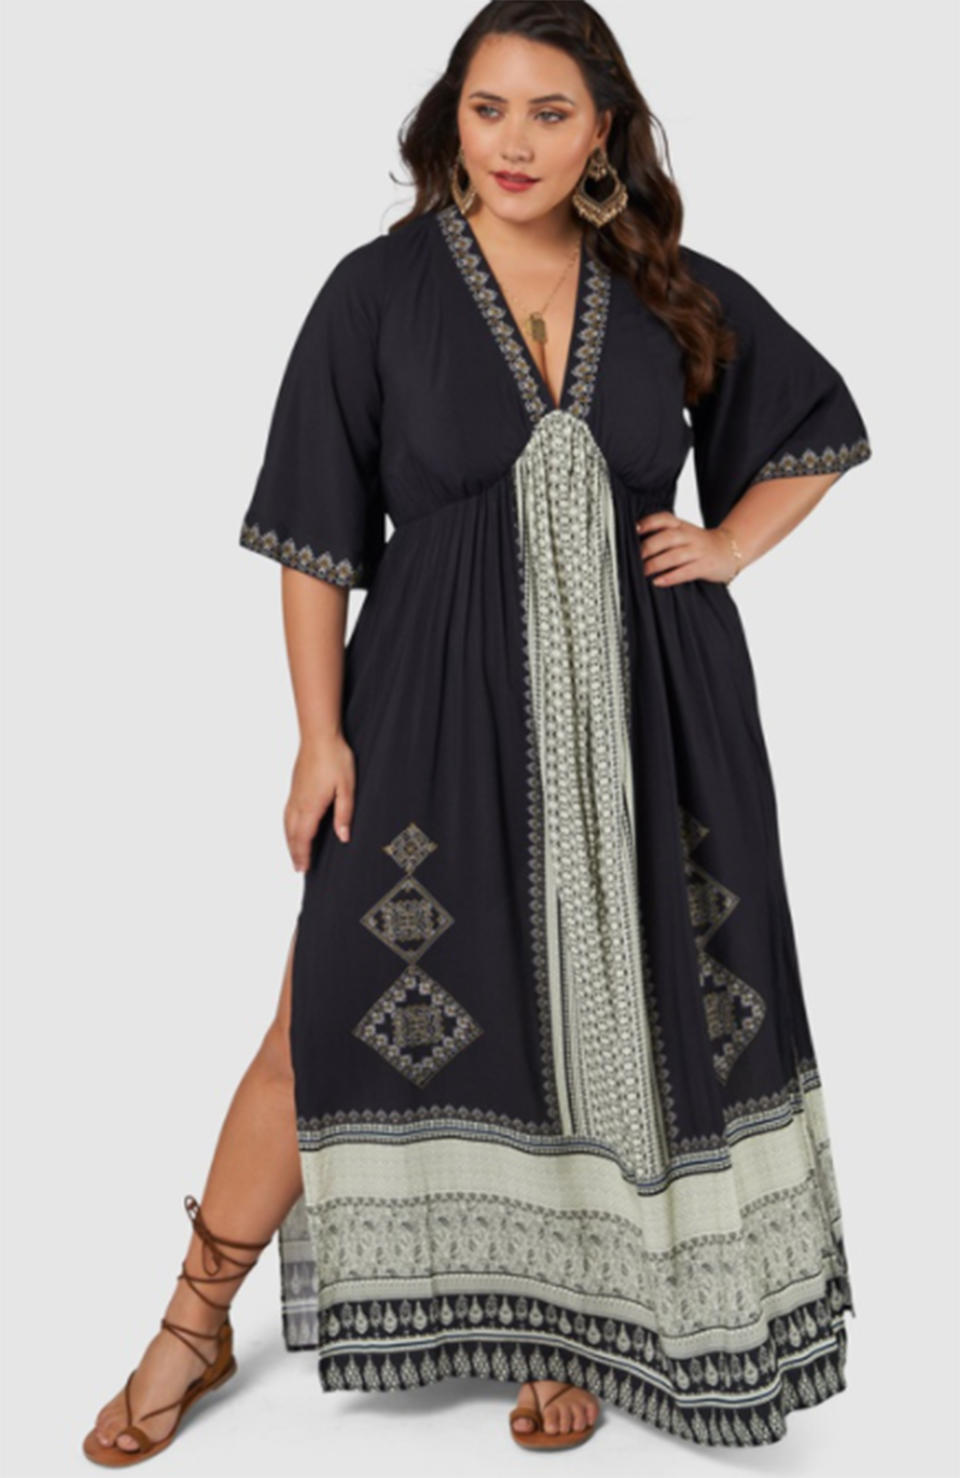 The Poetic Gypsy Crystal Illusion Maxi Dress, $139.99 from The Iconic. Photo: The Iconic.